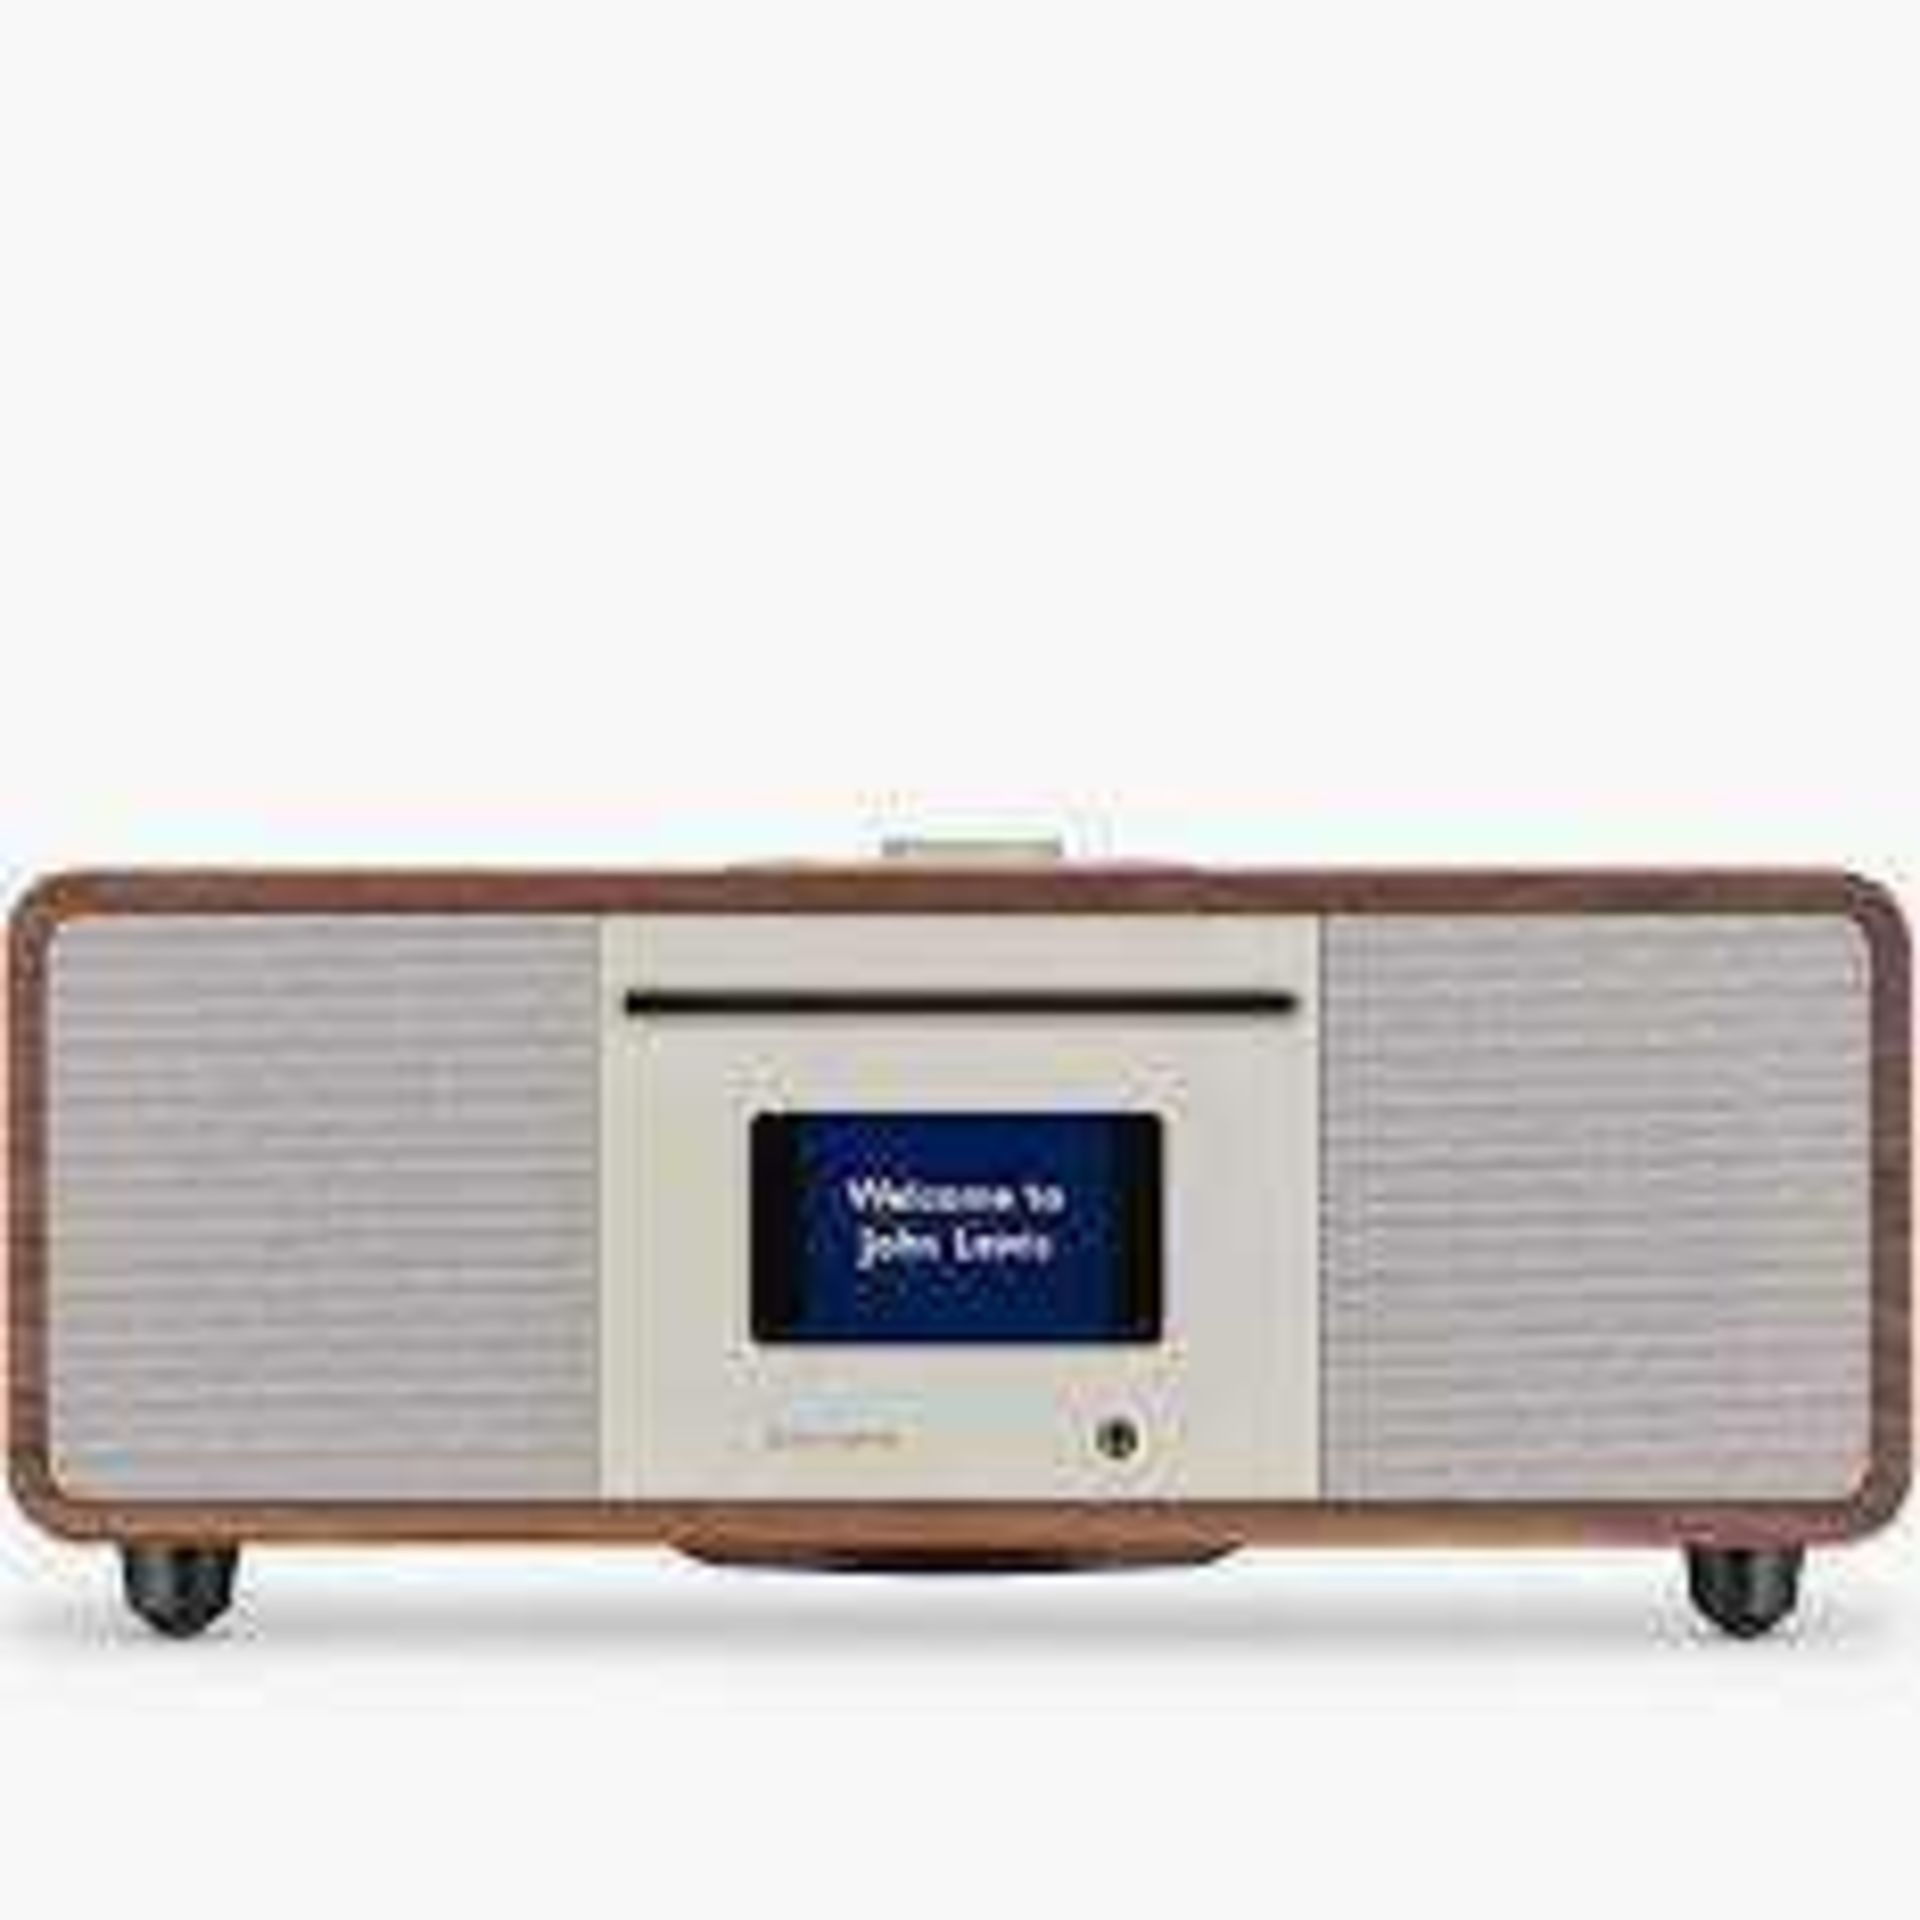 RRP £200 Boxed John Lewis Cello Hi-Fi Music System With Dab Fm Internet Radio